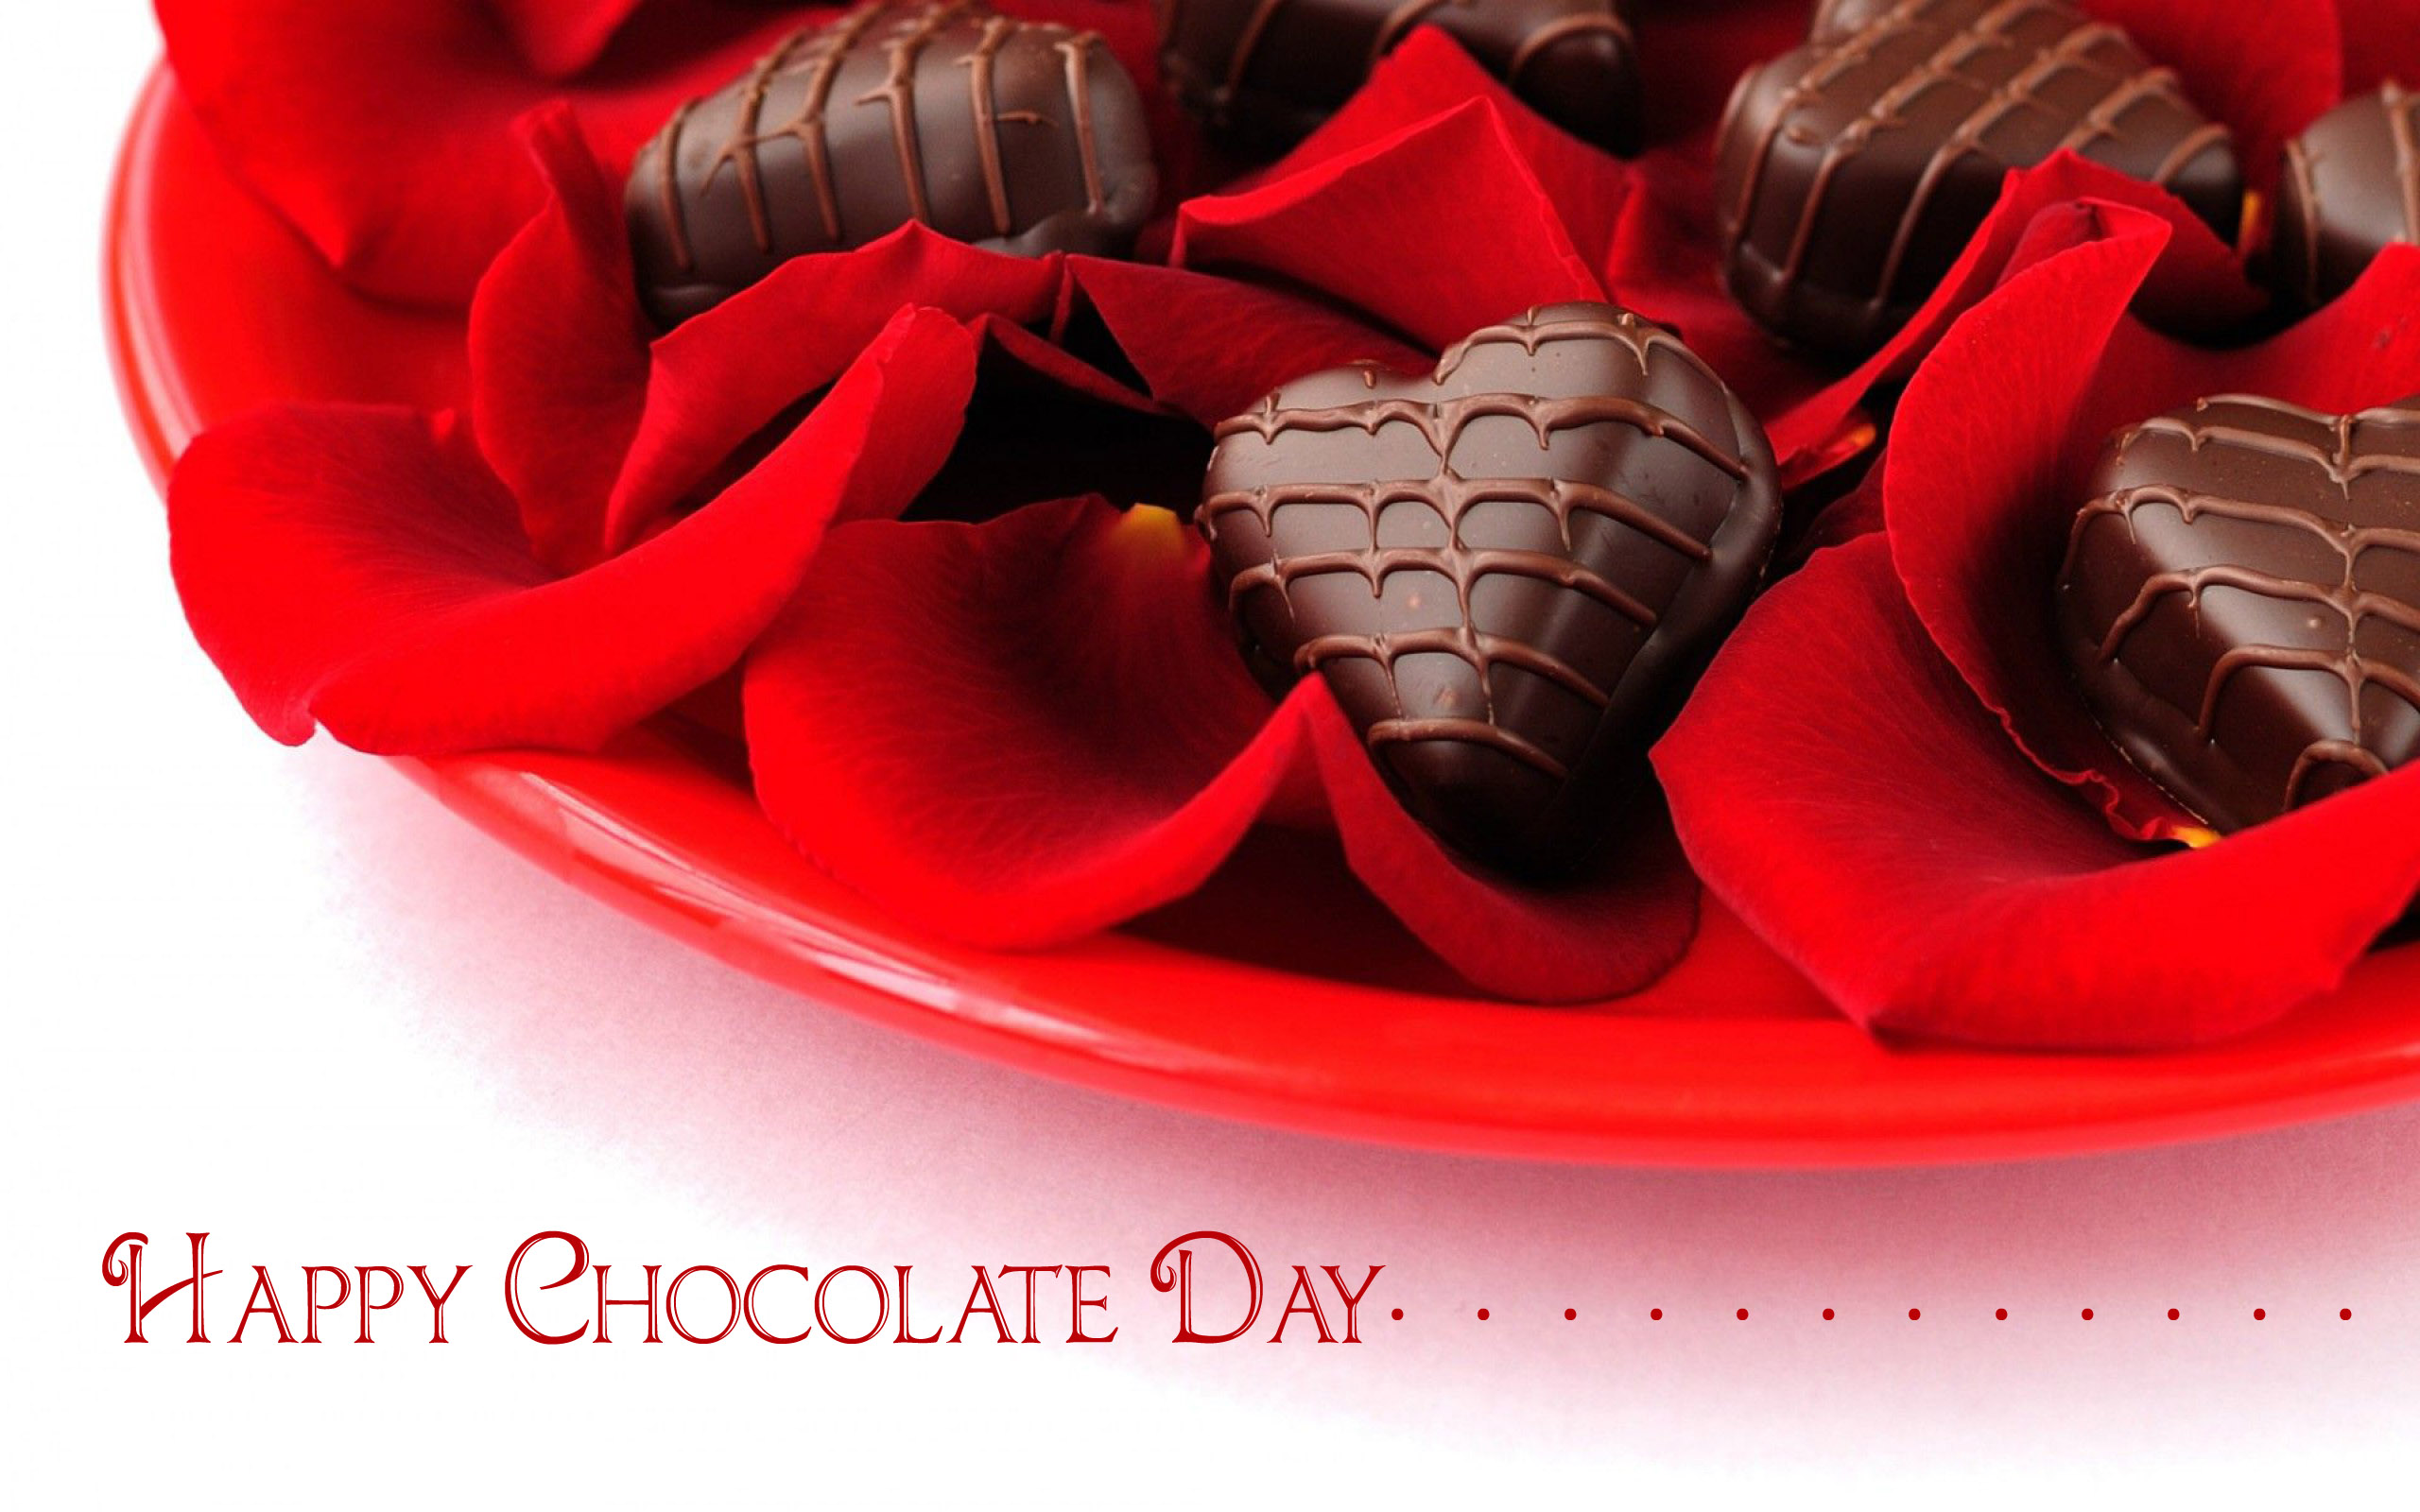 happy-chocolate-day-2016-new-wallpapers-images